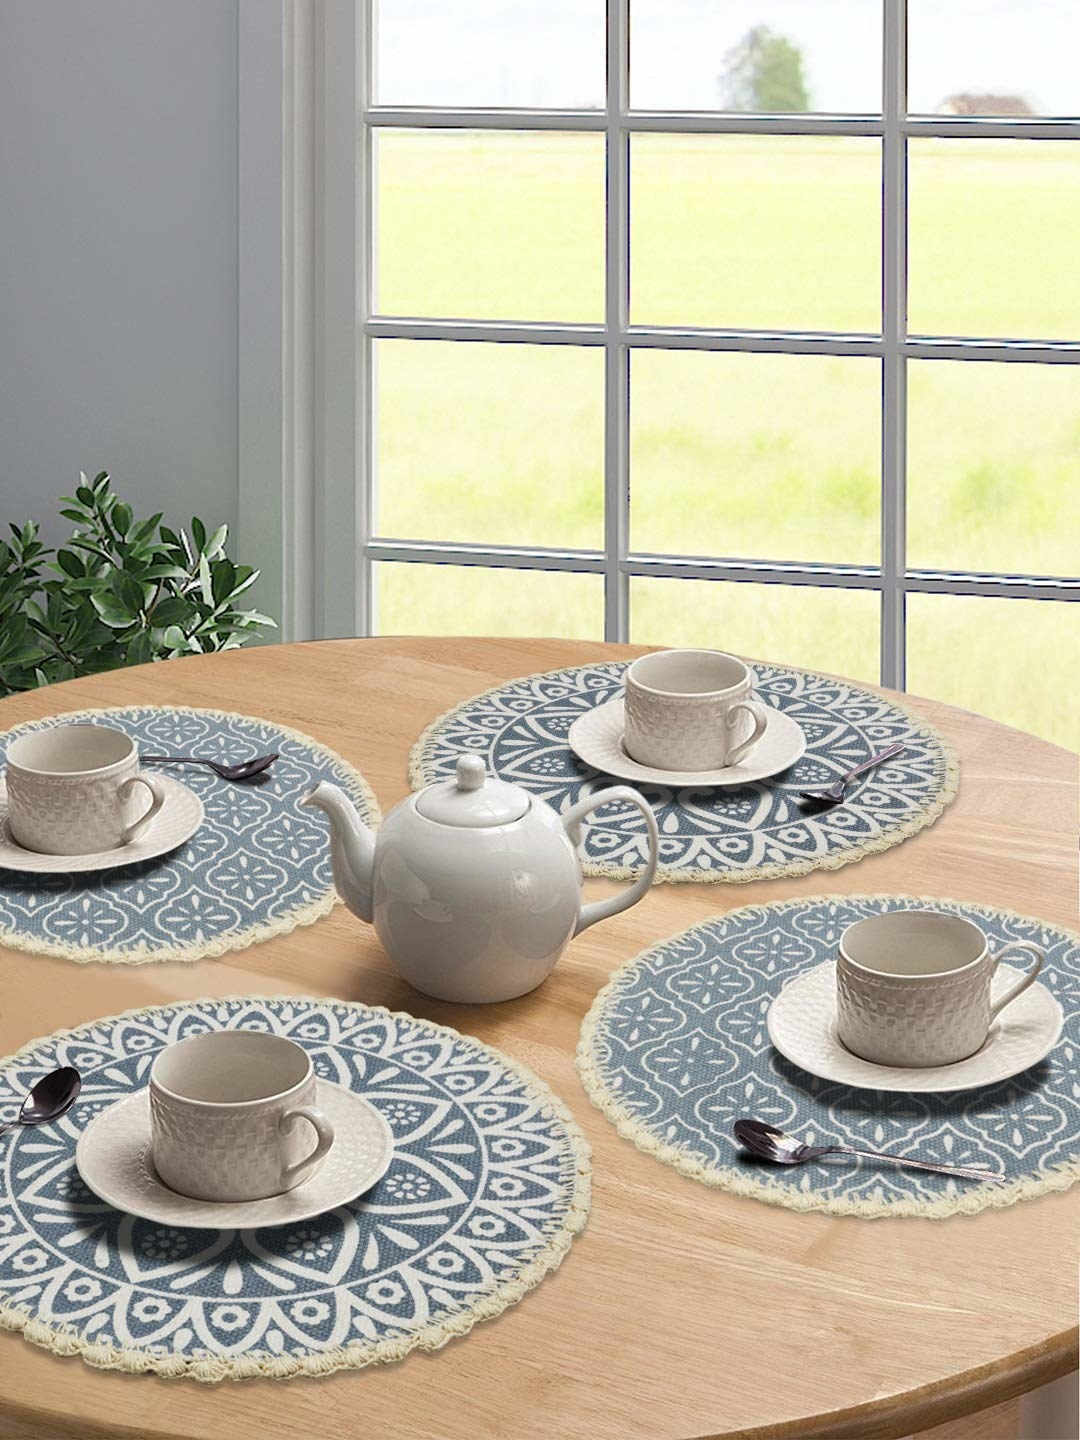 Circular Jute grey table mats with white porcelain cups placed on top of it